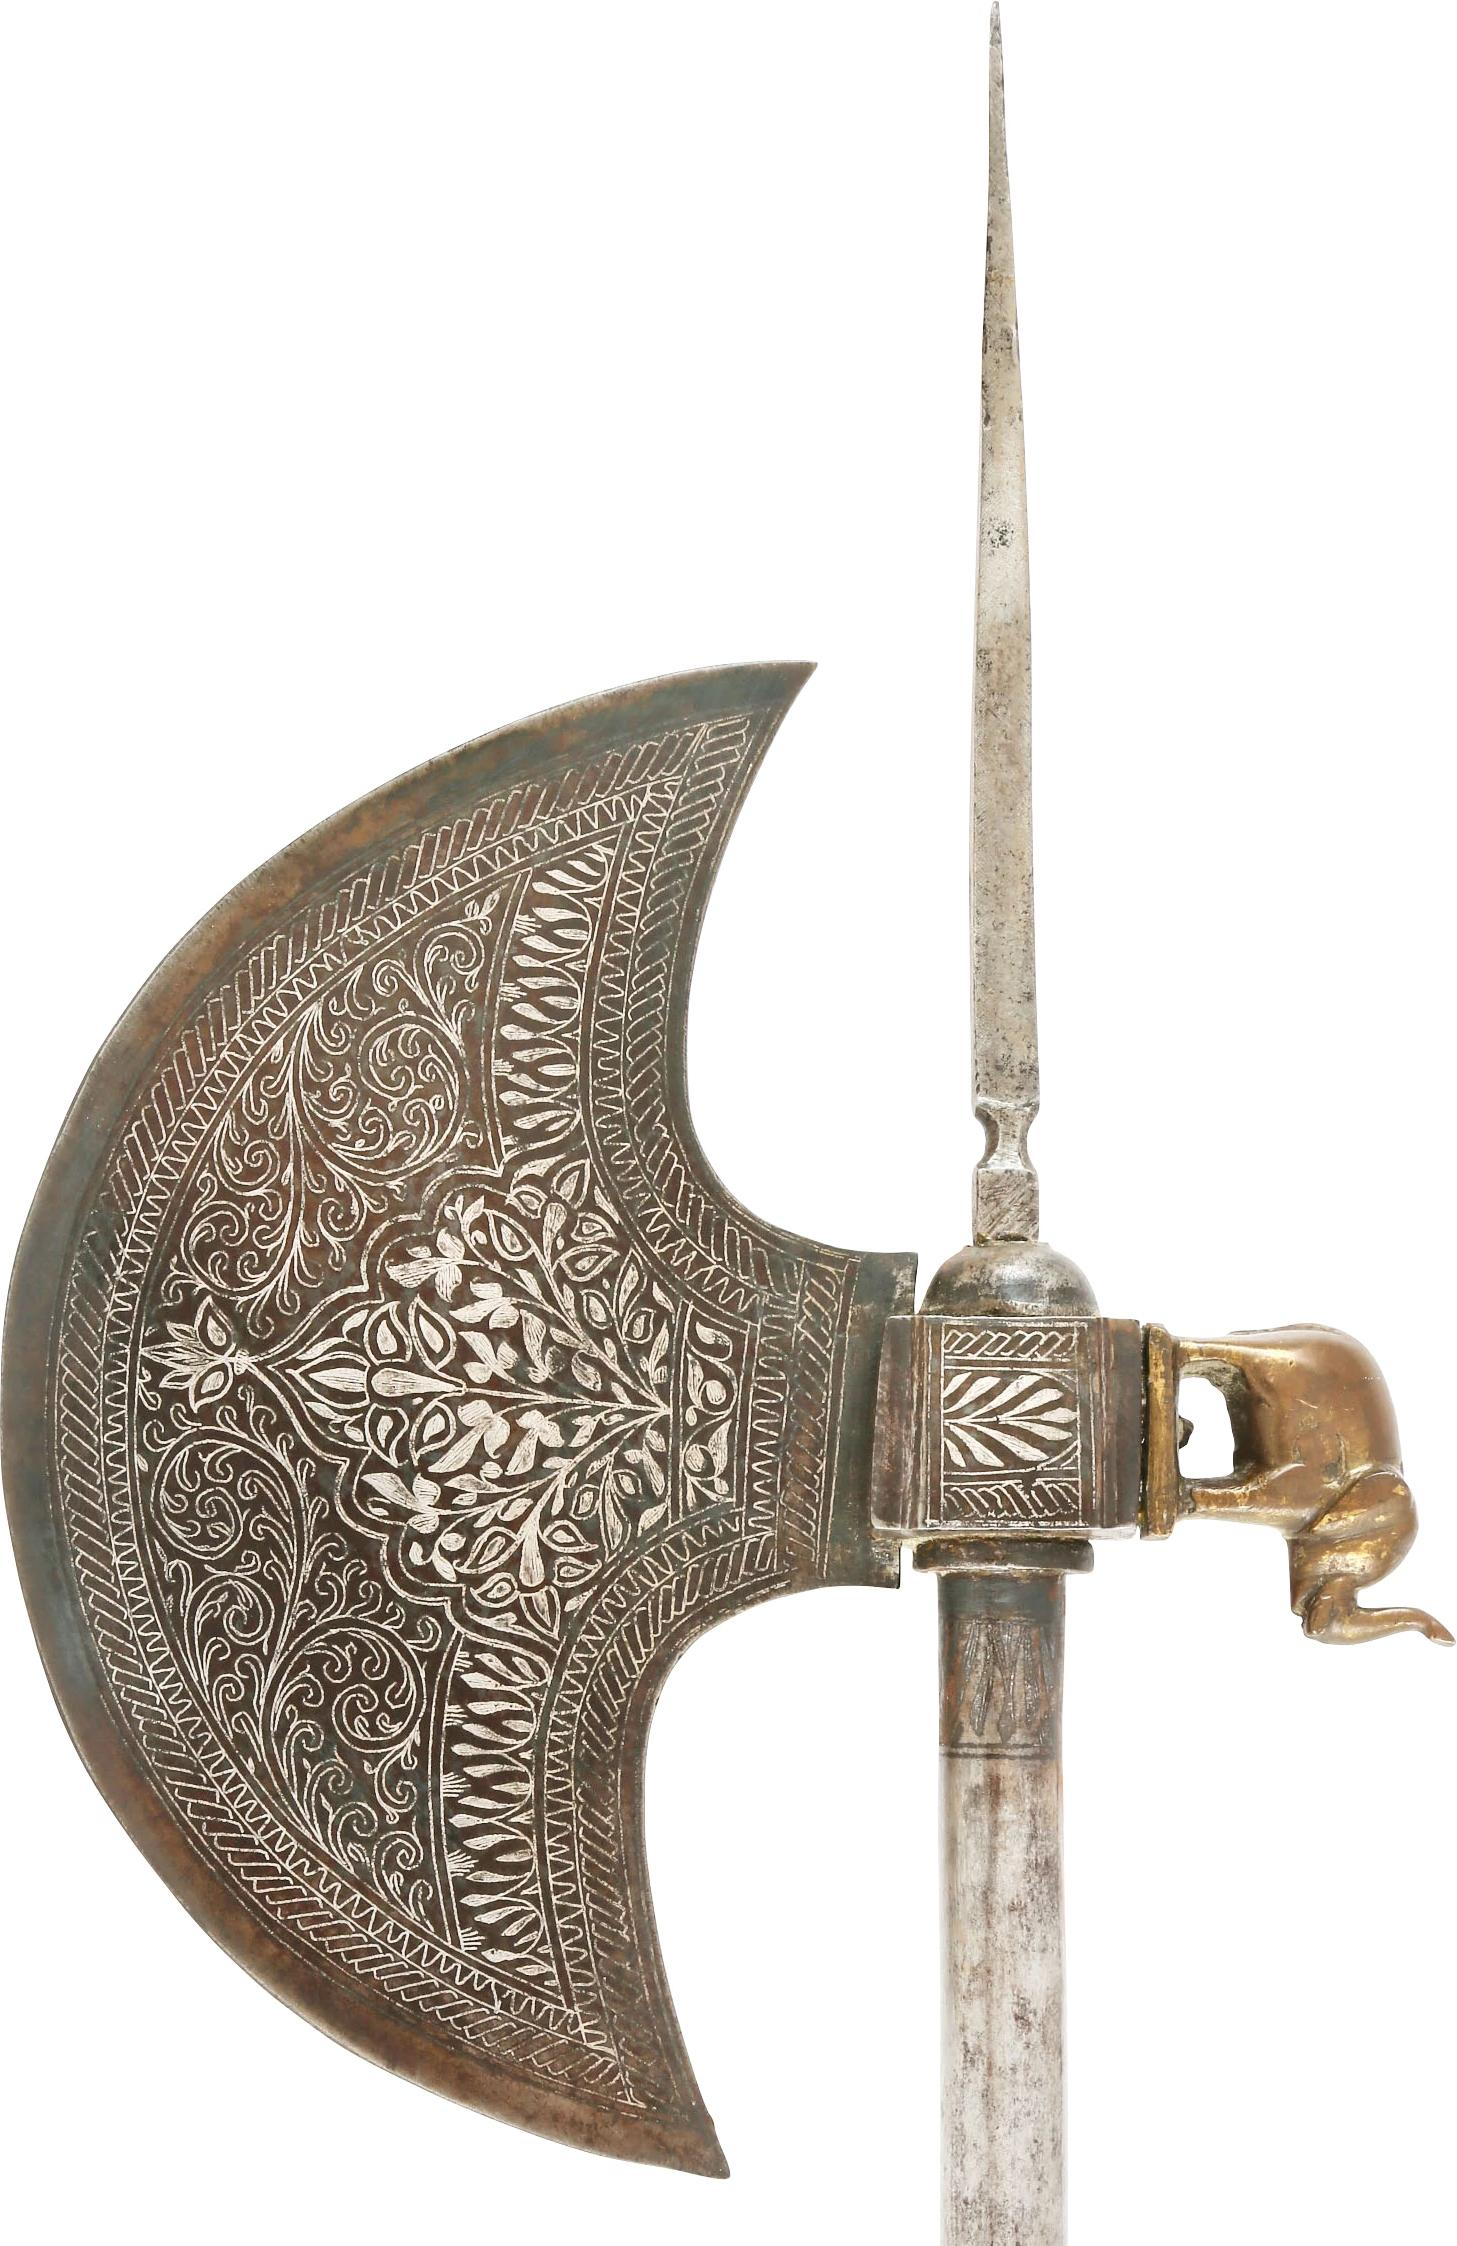 INDOPERSIAN BATTLE AXE.